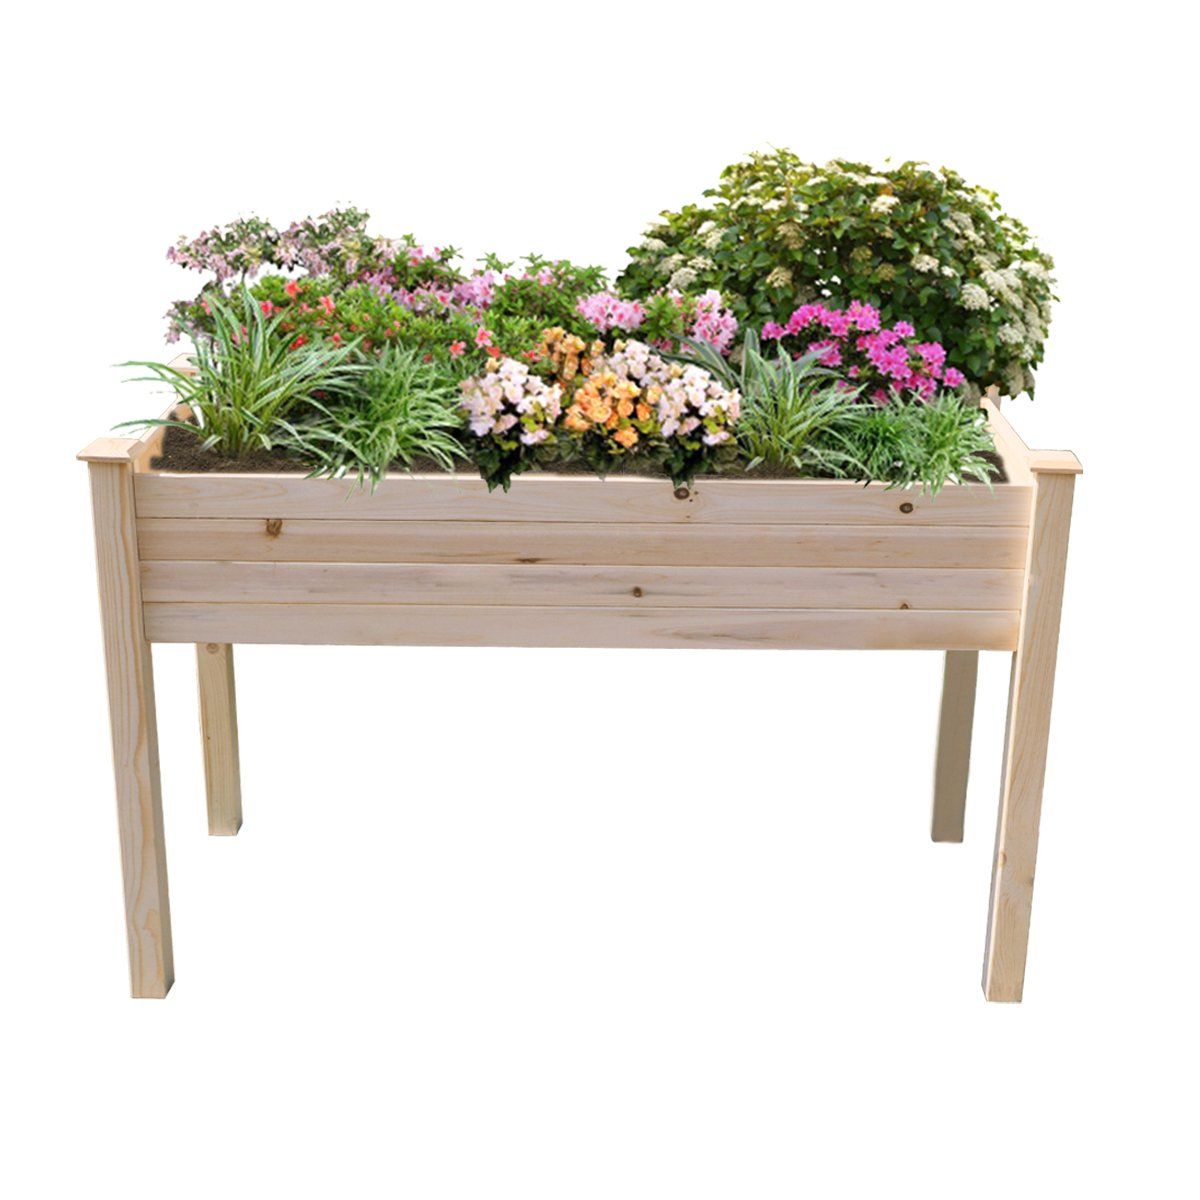 Yardeen Cedar Wood Raised Planter Bed Flower Yard Gardening Planter for Patio Deck Balcony by Yardeen